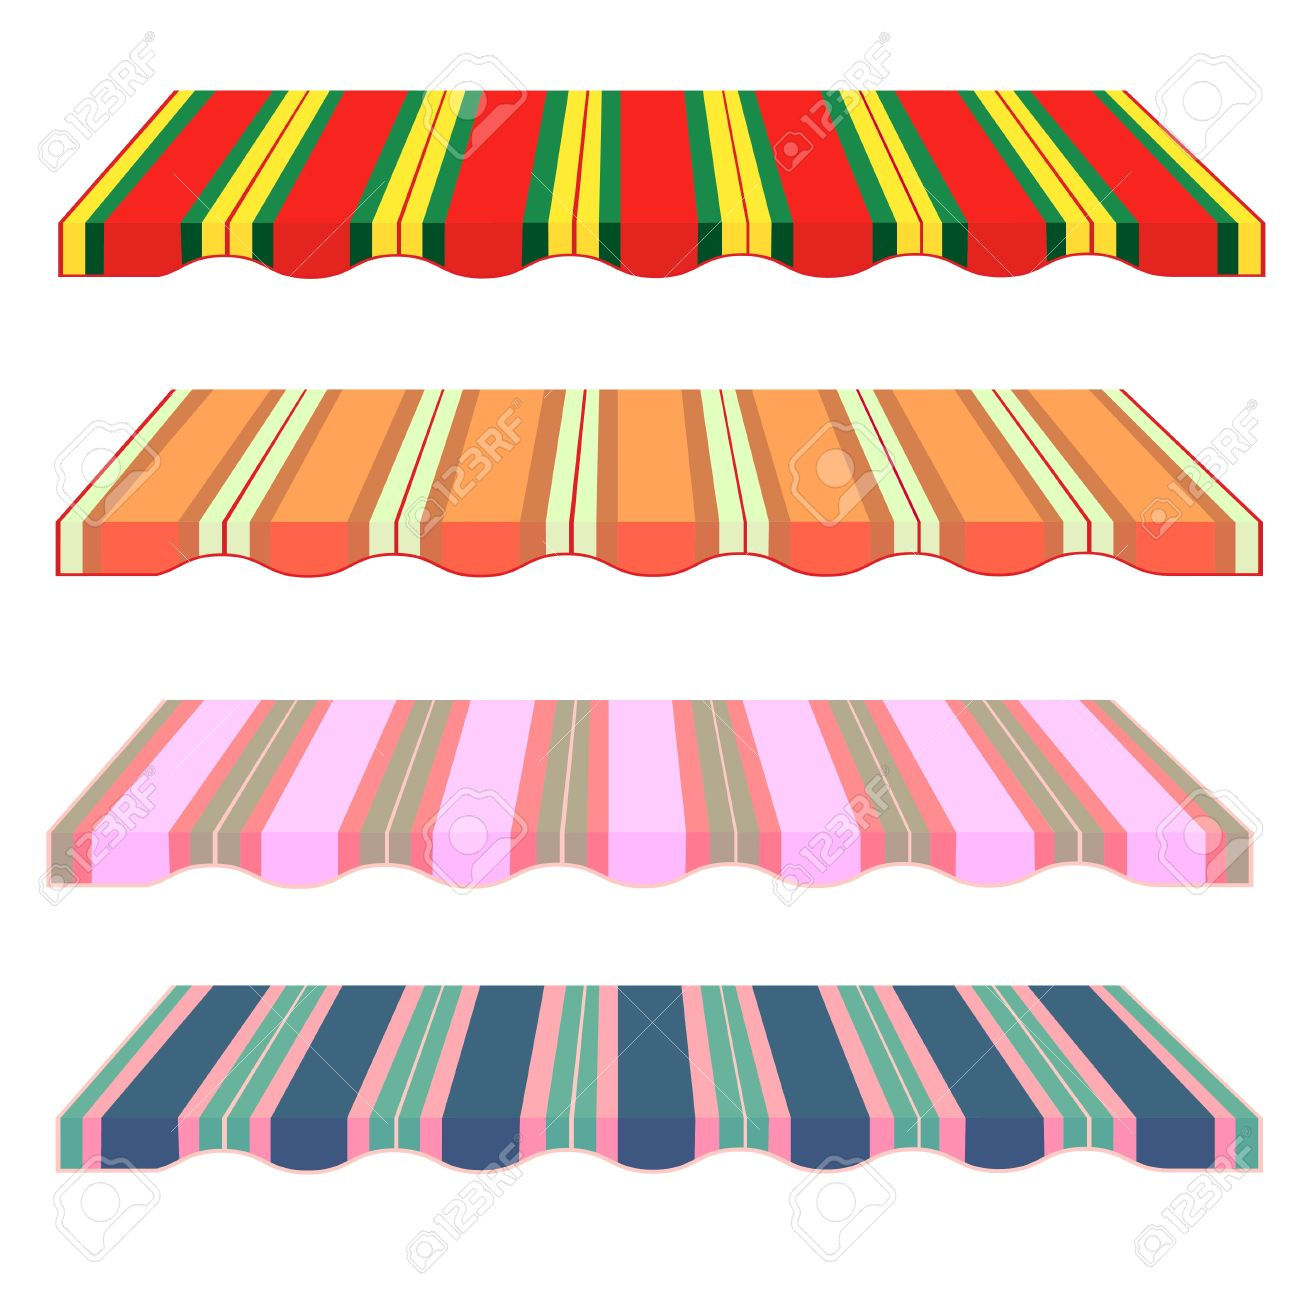 Detailed Illustration Of Set Of Striped Awnings. Vector. Roof.